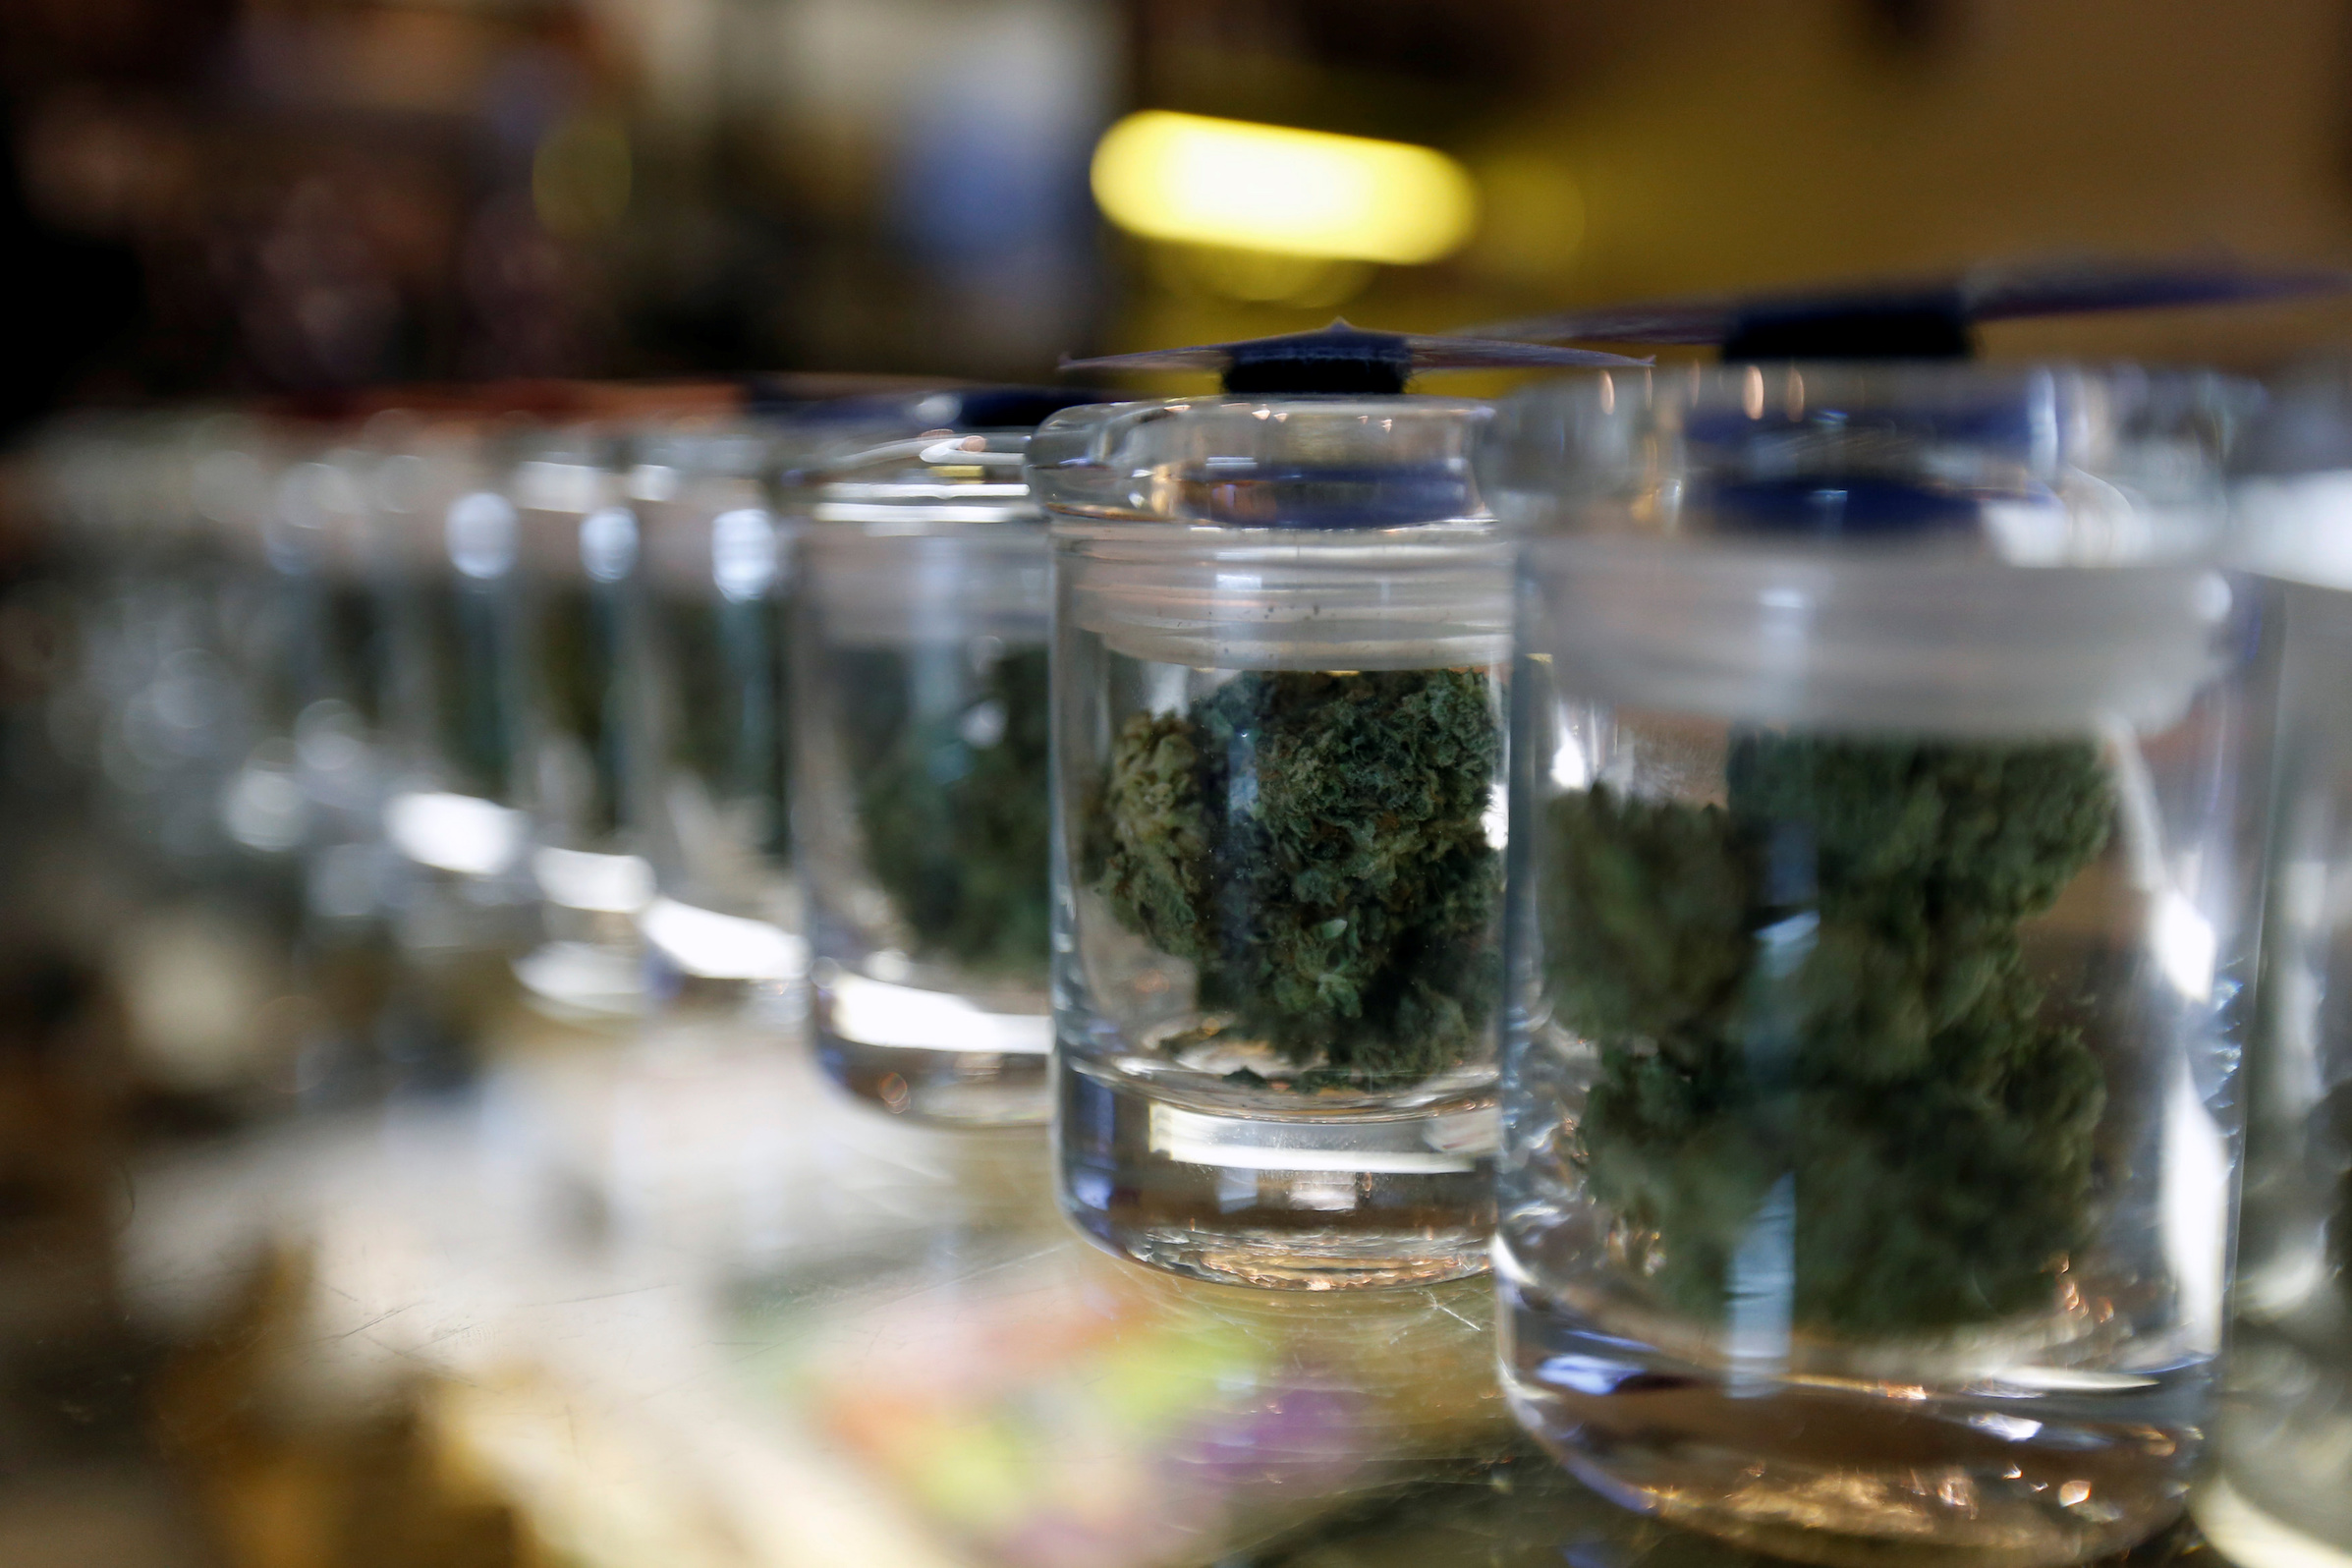 A variety of medicinal marijuana buds in jars are pictured at Los Angeles Patients & Caregivers Group dispensary in West Hollywood, California U.S., October 18, 2016. Picture taken October 18, 2016. REUTERS/Mario Anzuoni - RTX2R4MU